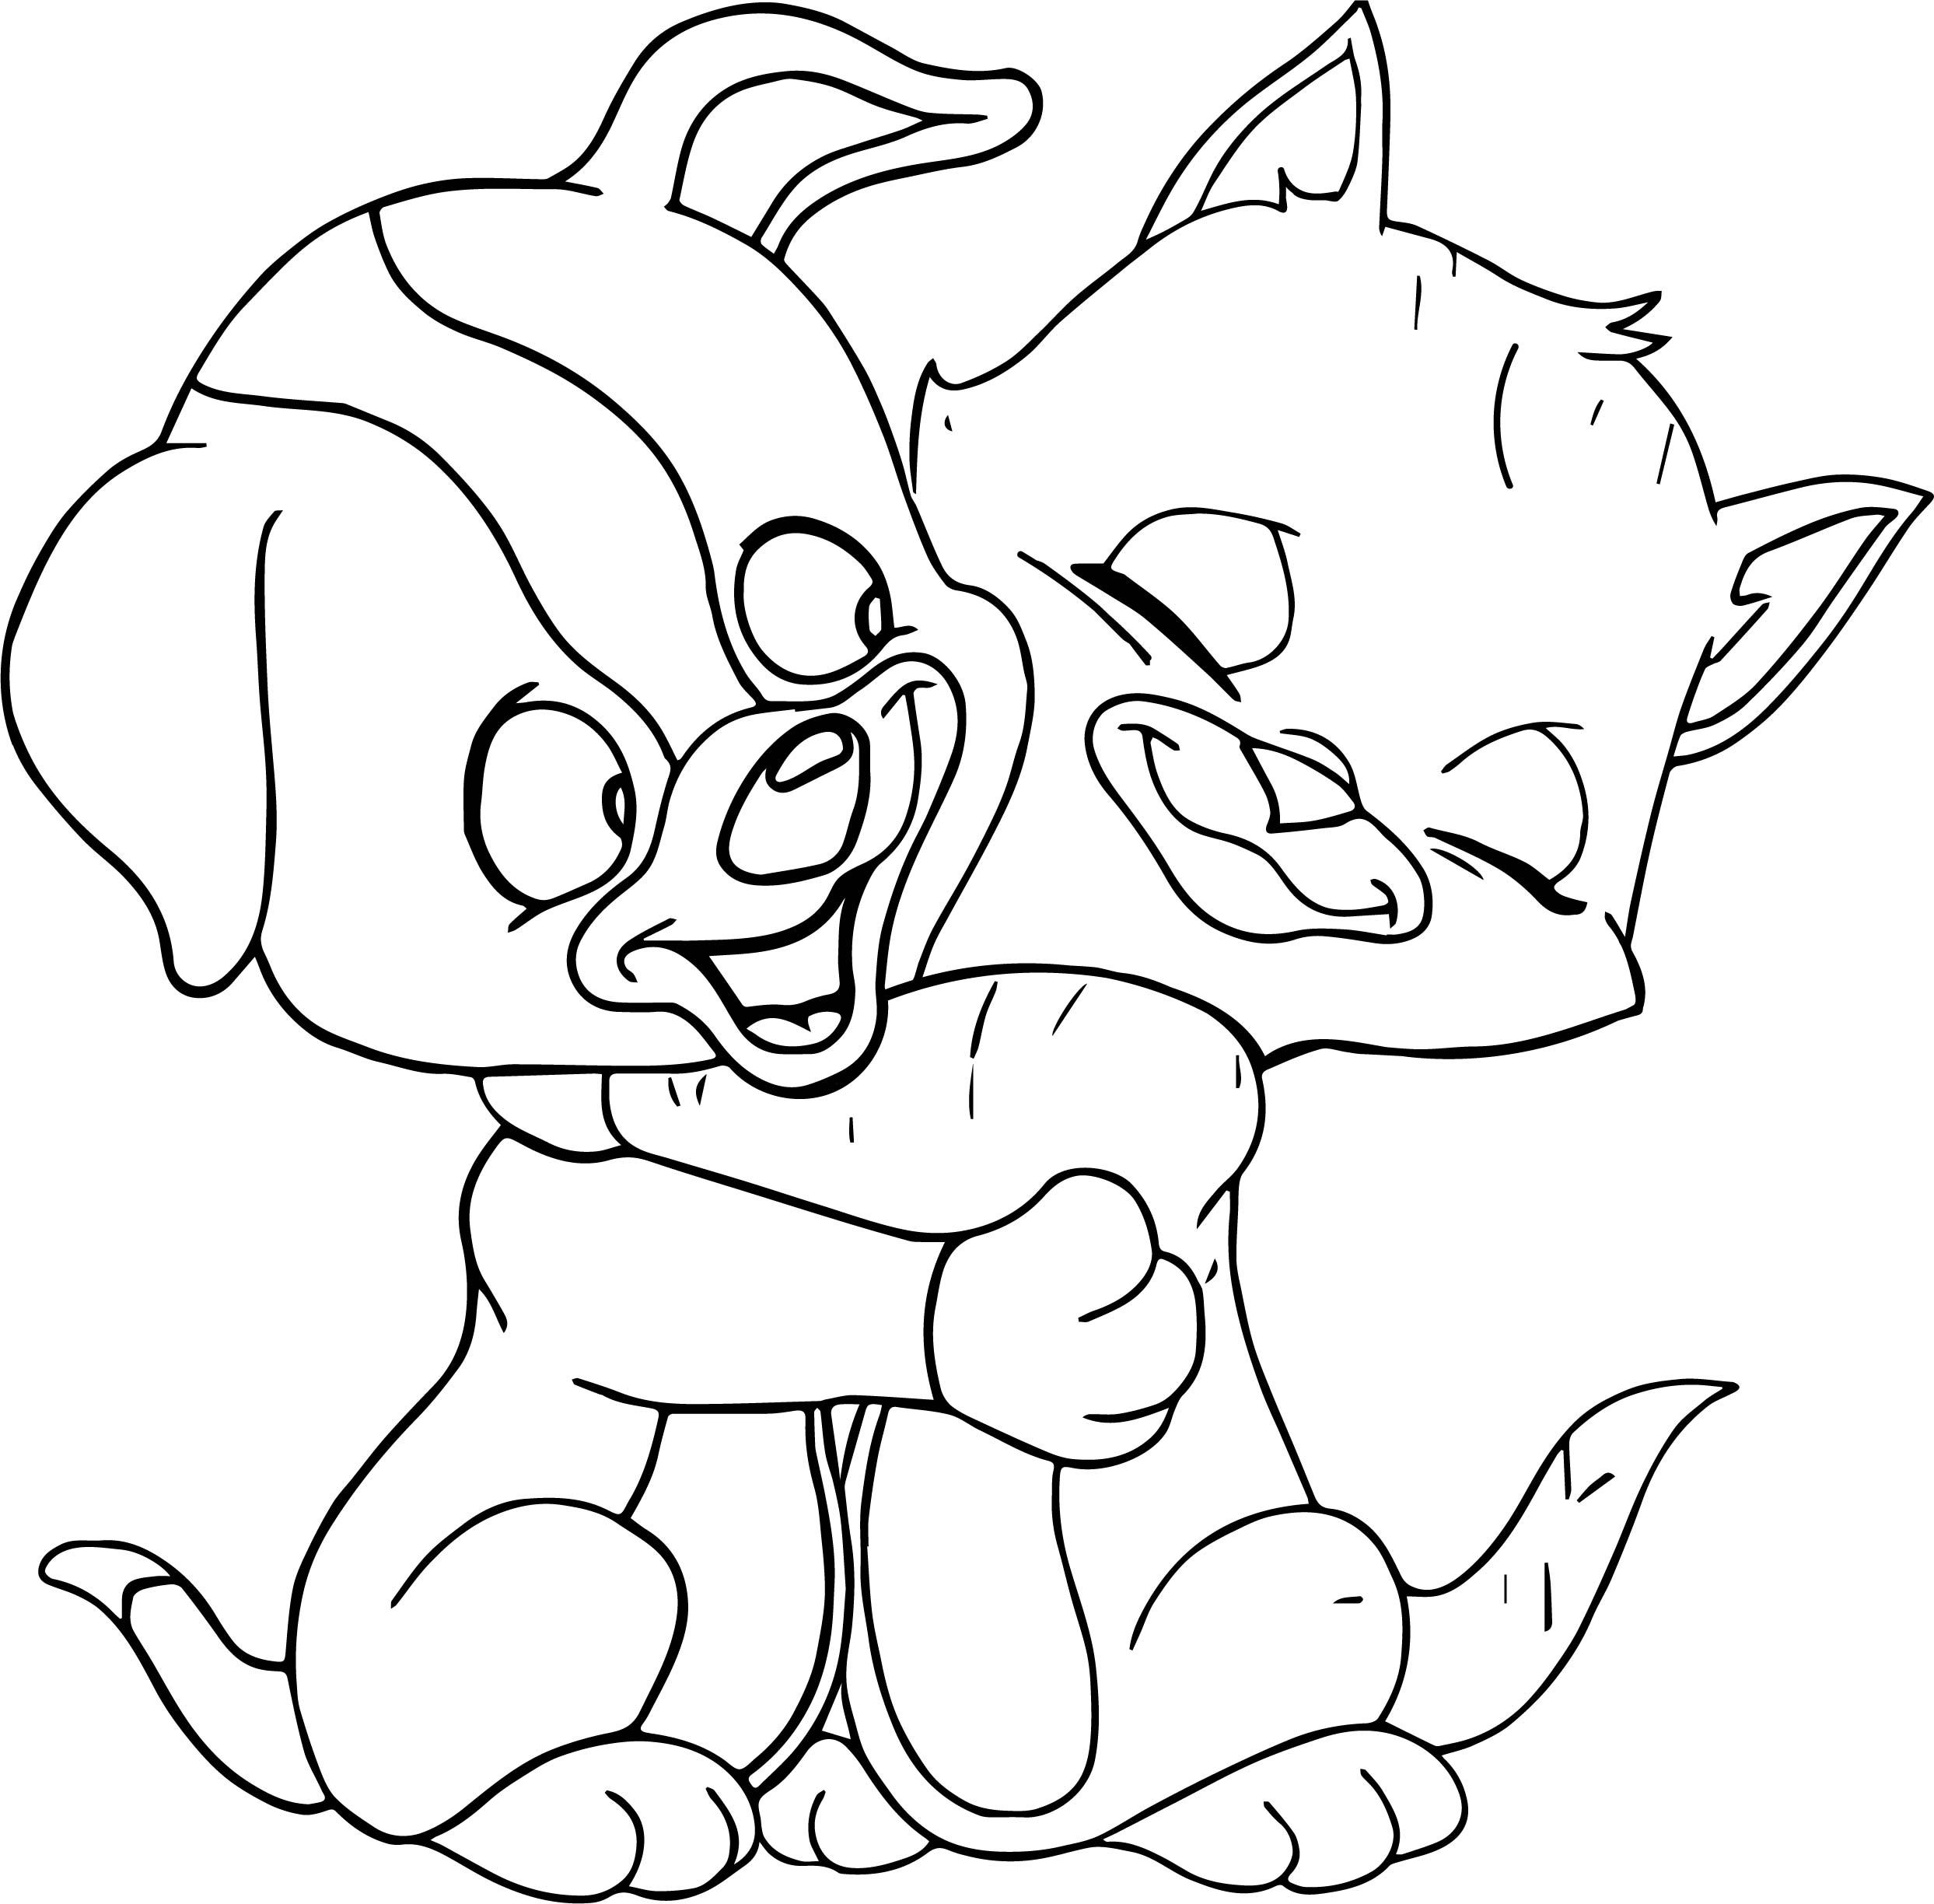 Cat Dog Hug Coloring Page Dogs Hugging Animal Coloring Pages Puppy Hug